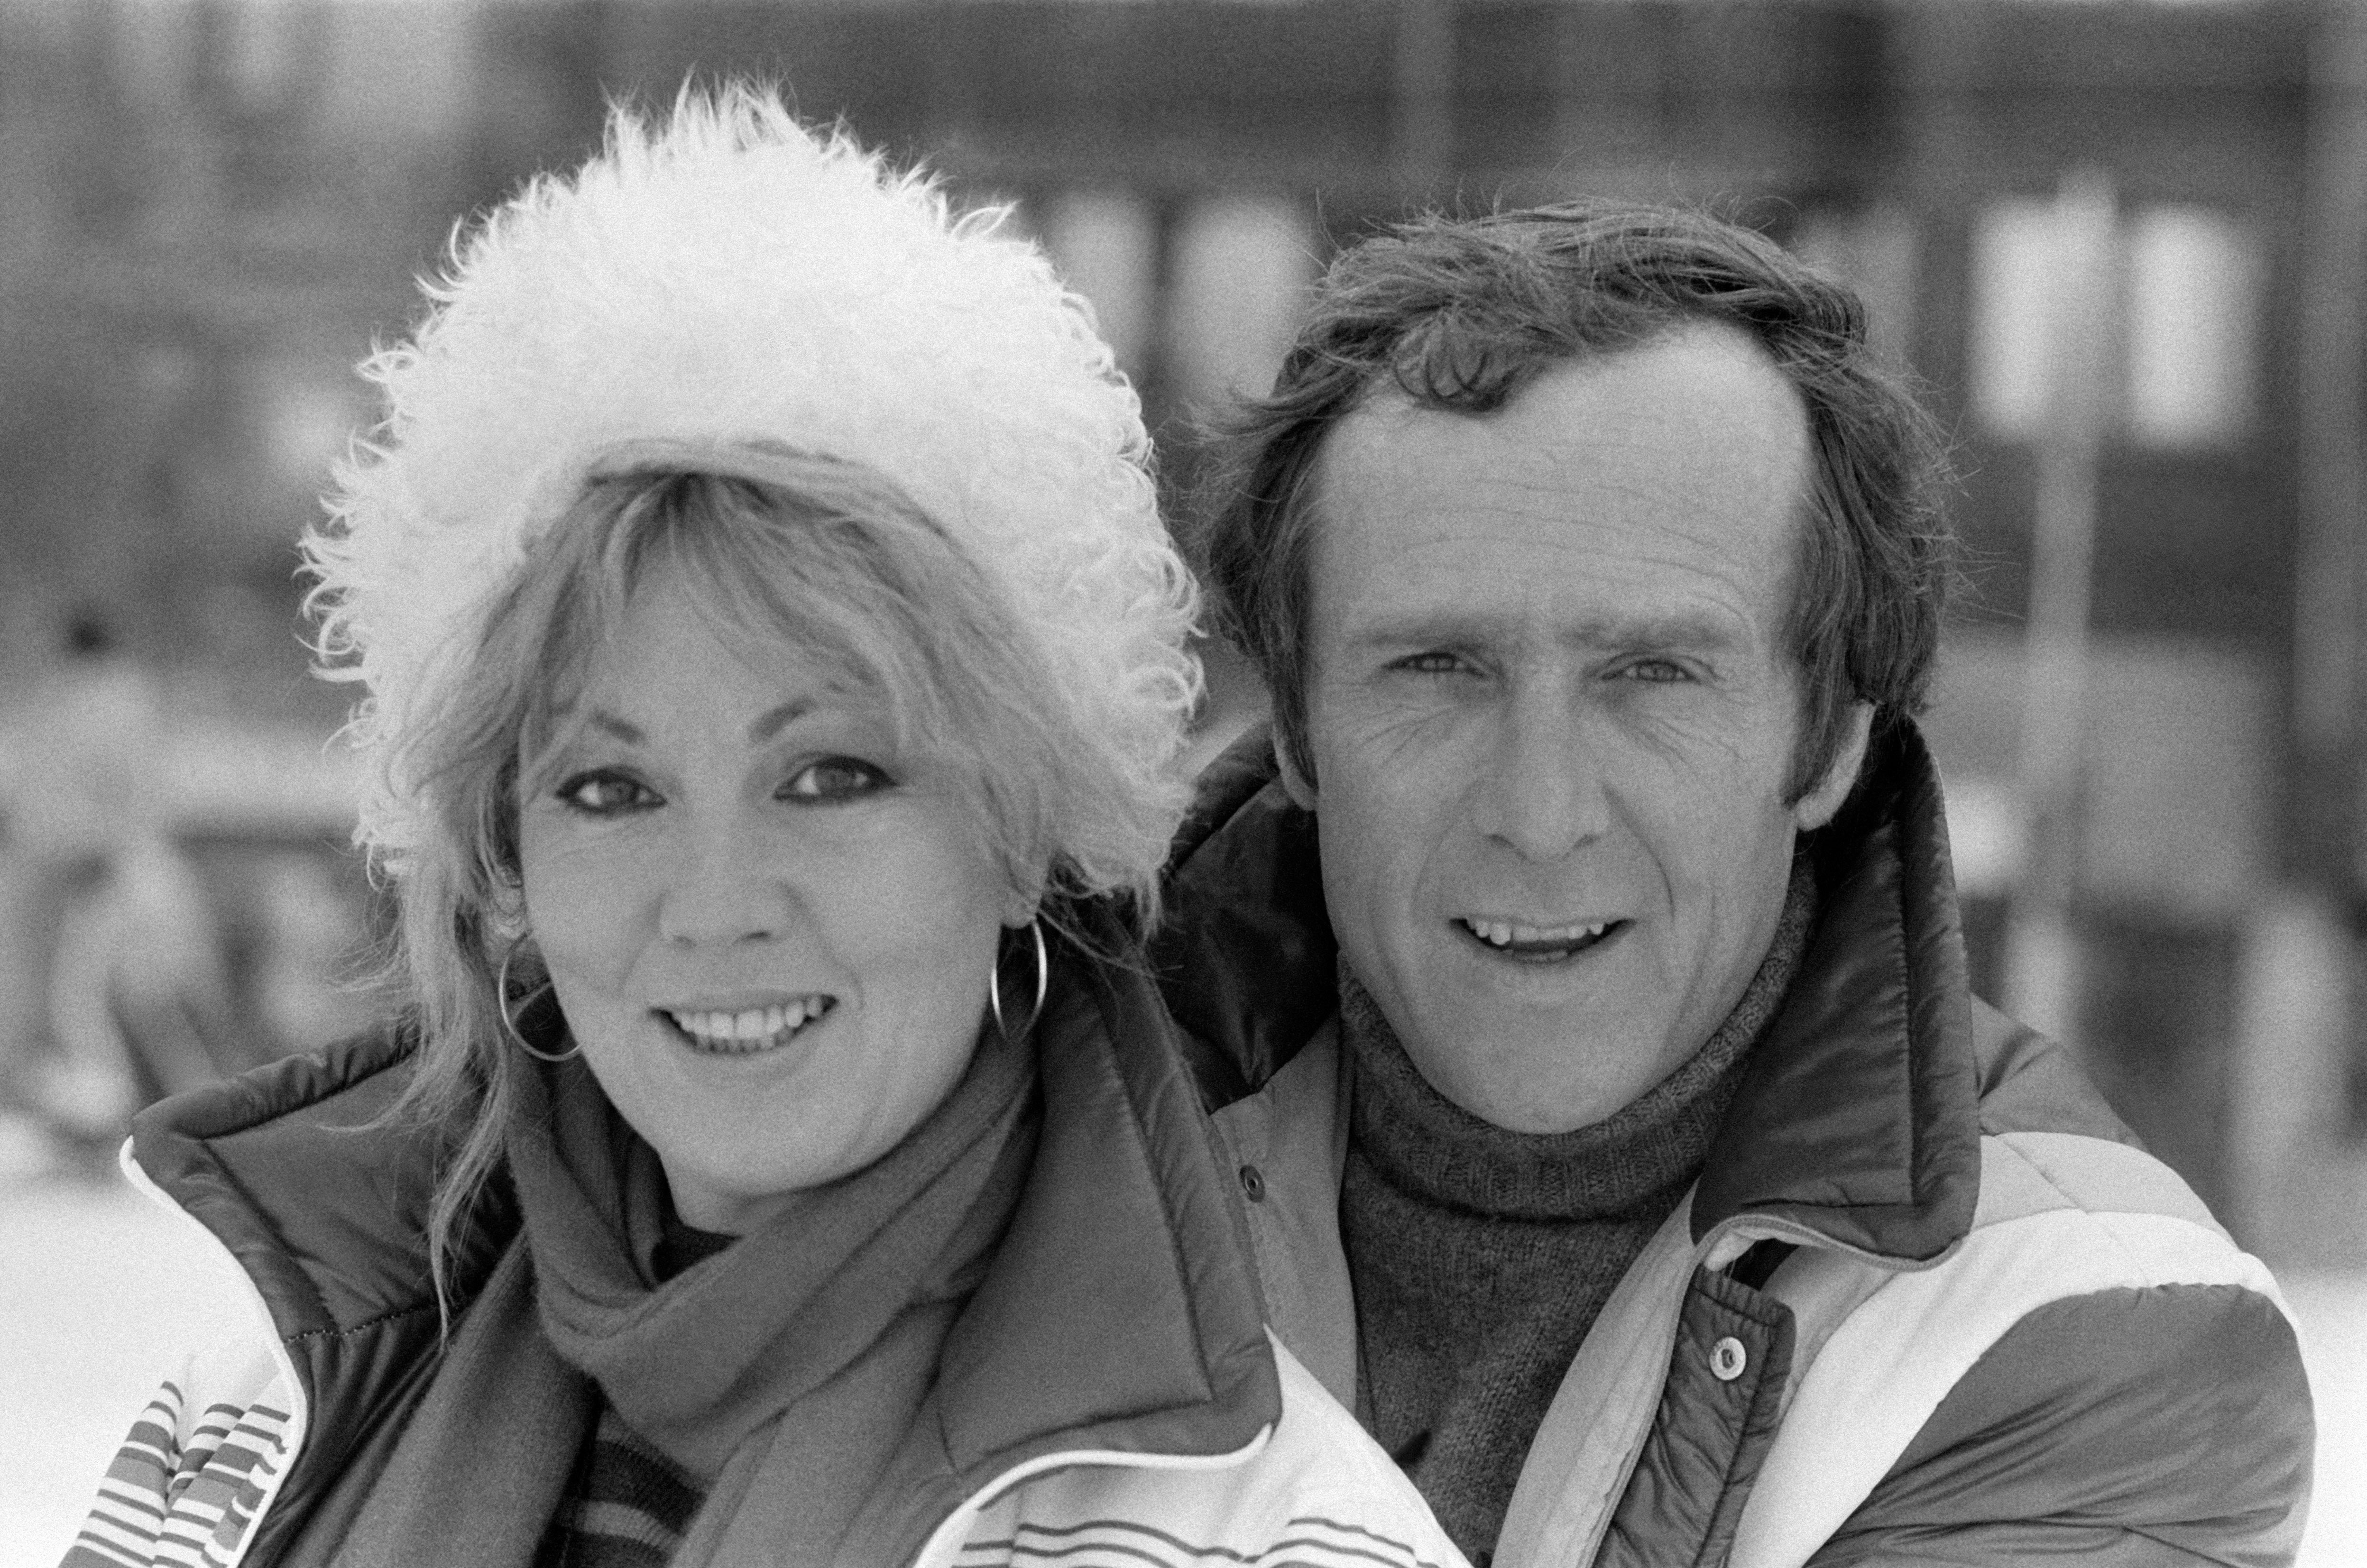 Mylène Demongeot et son mari Marc Simenon au Festival d'Avoriaz le 23 janvier 1982, France. | Photo : Getty Images